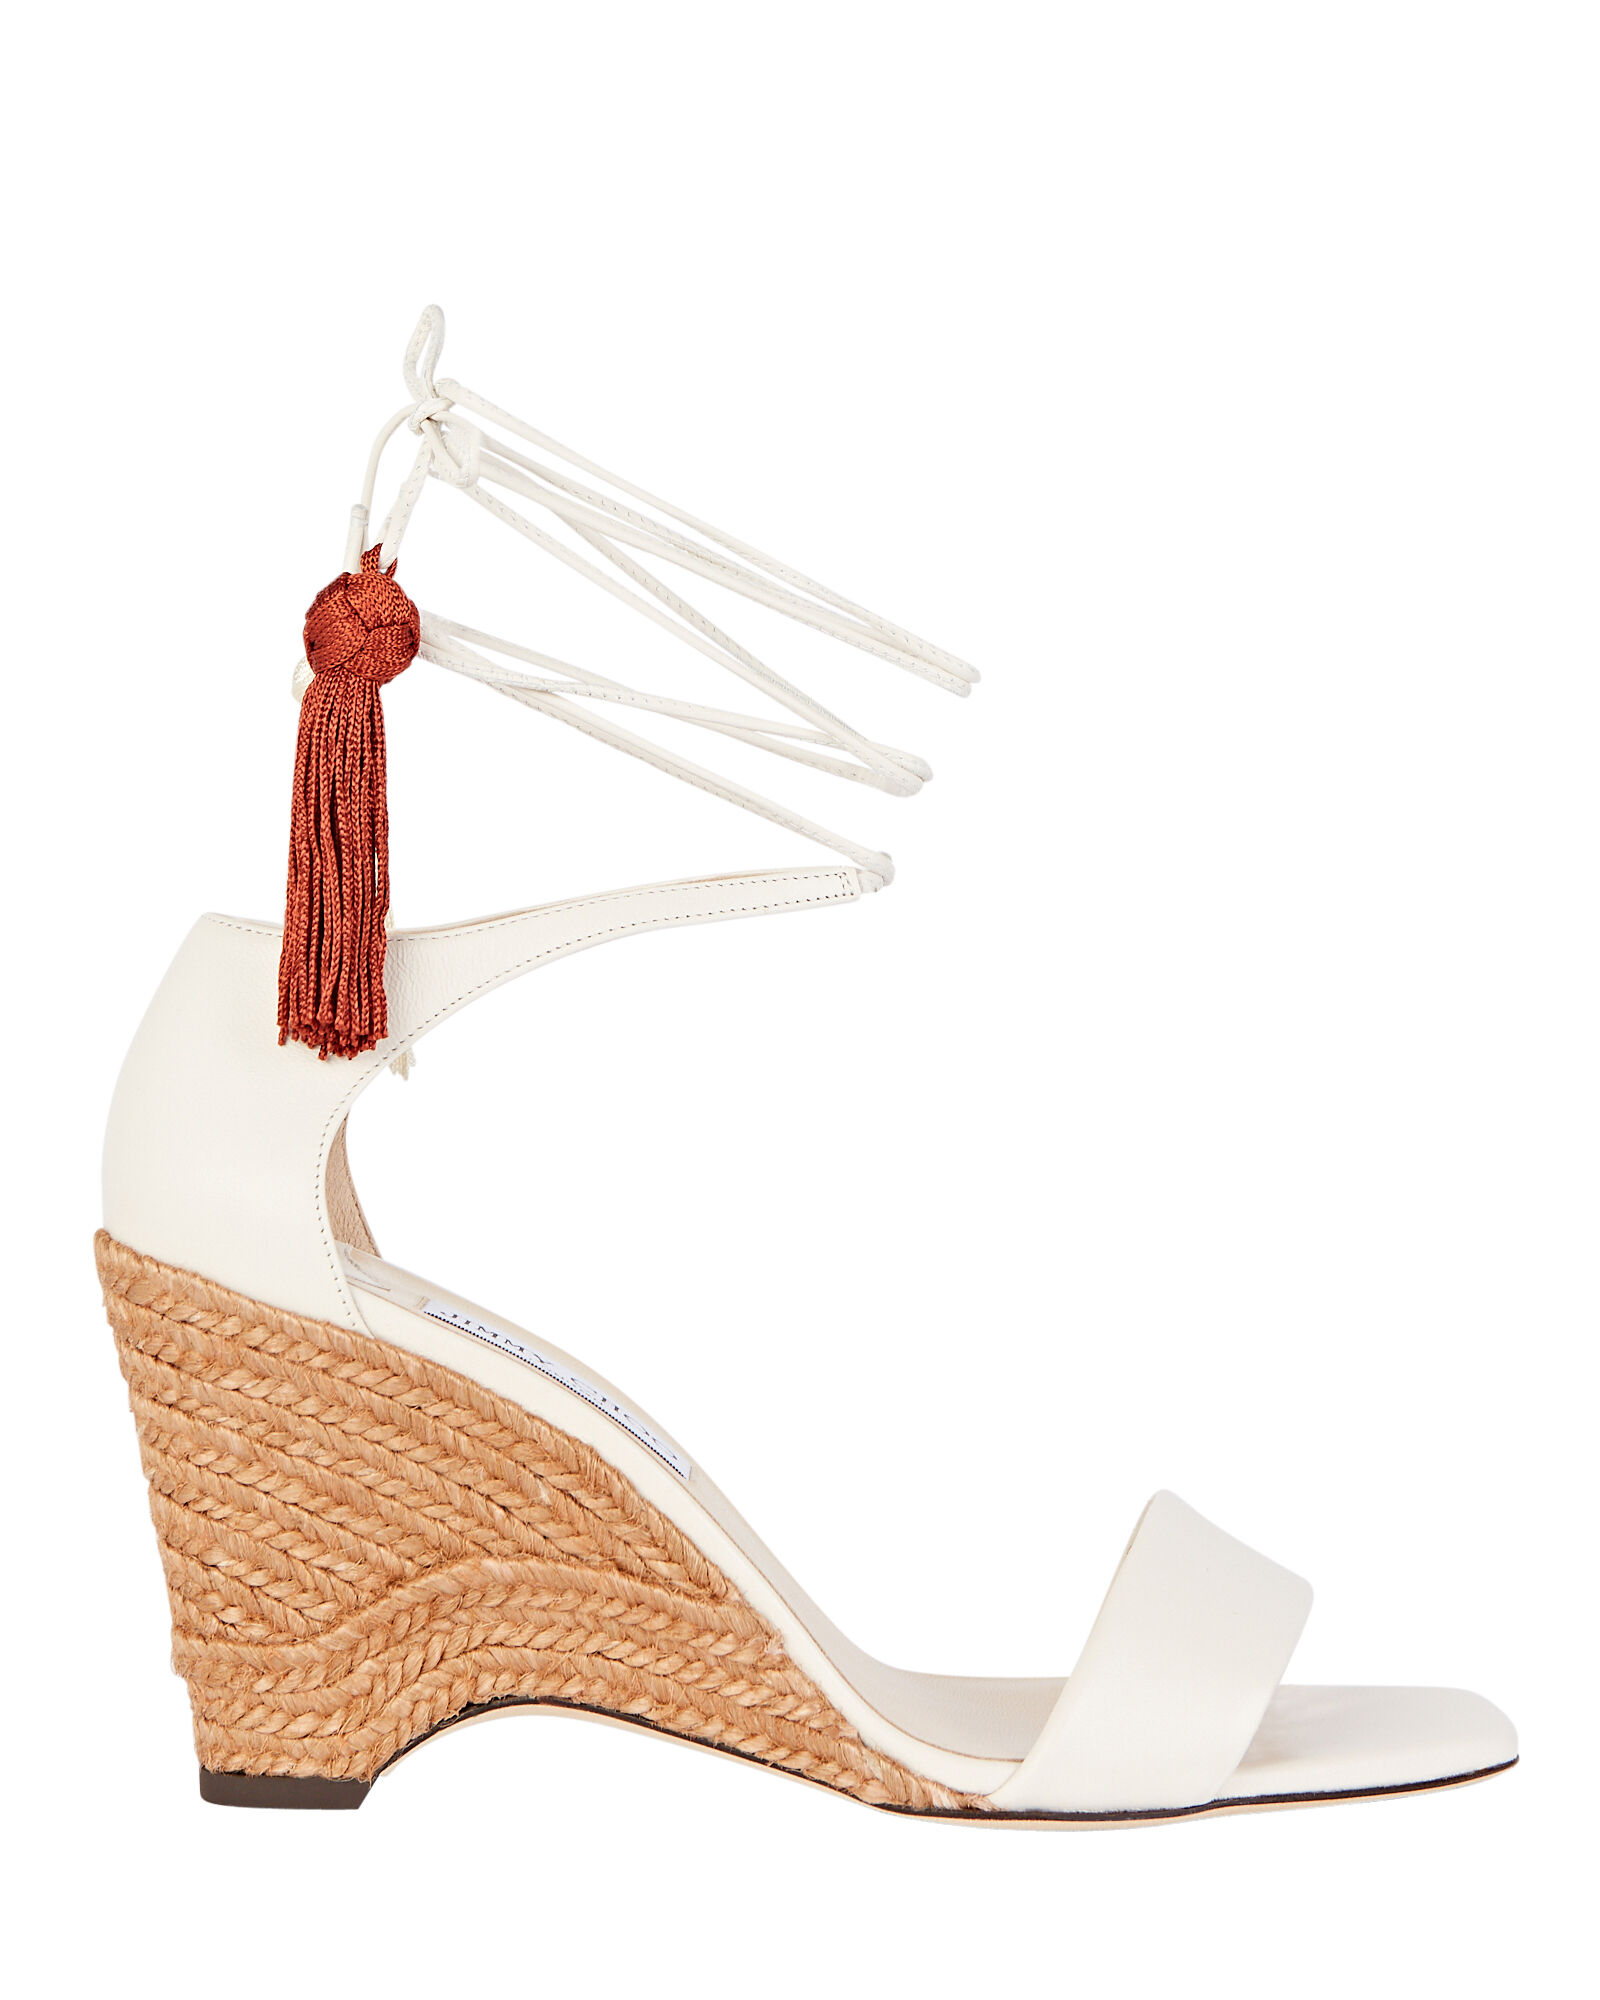 Deva 85 Ankle Wrap Wedges, IVORY, hi-res